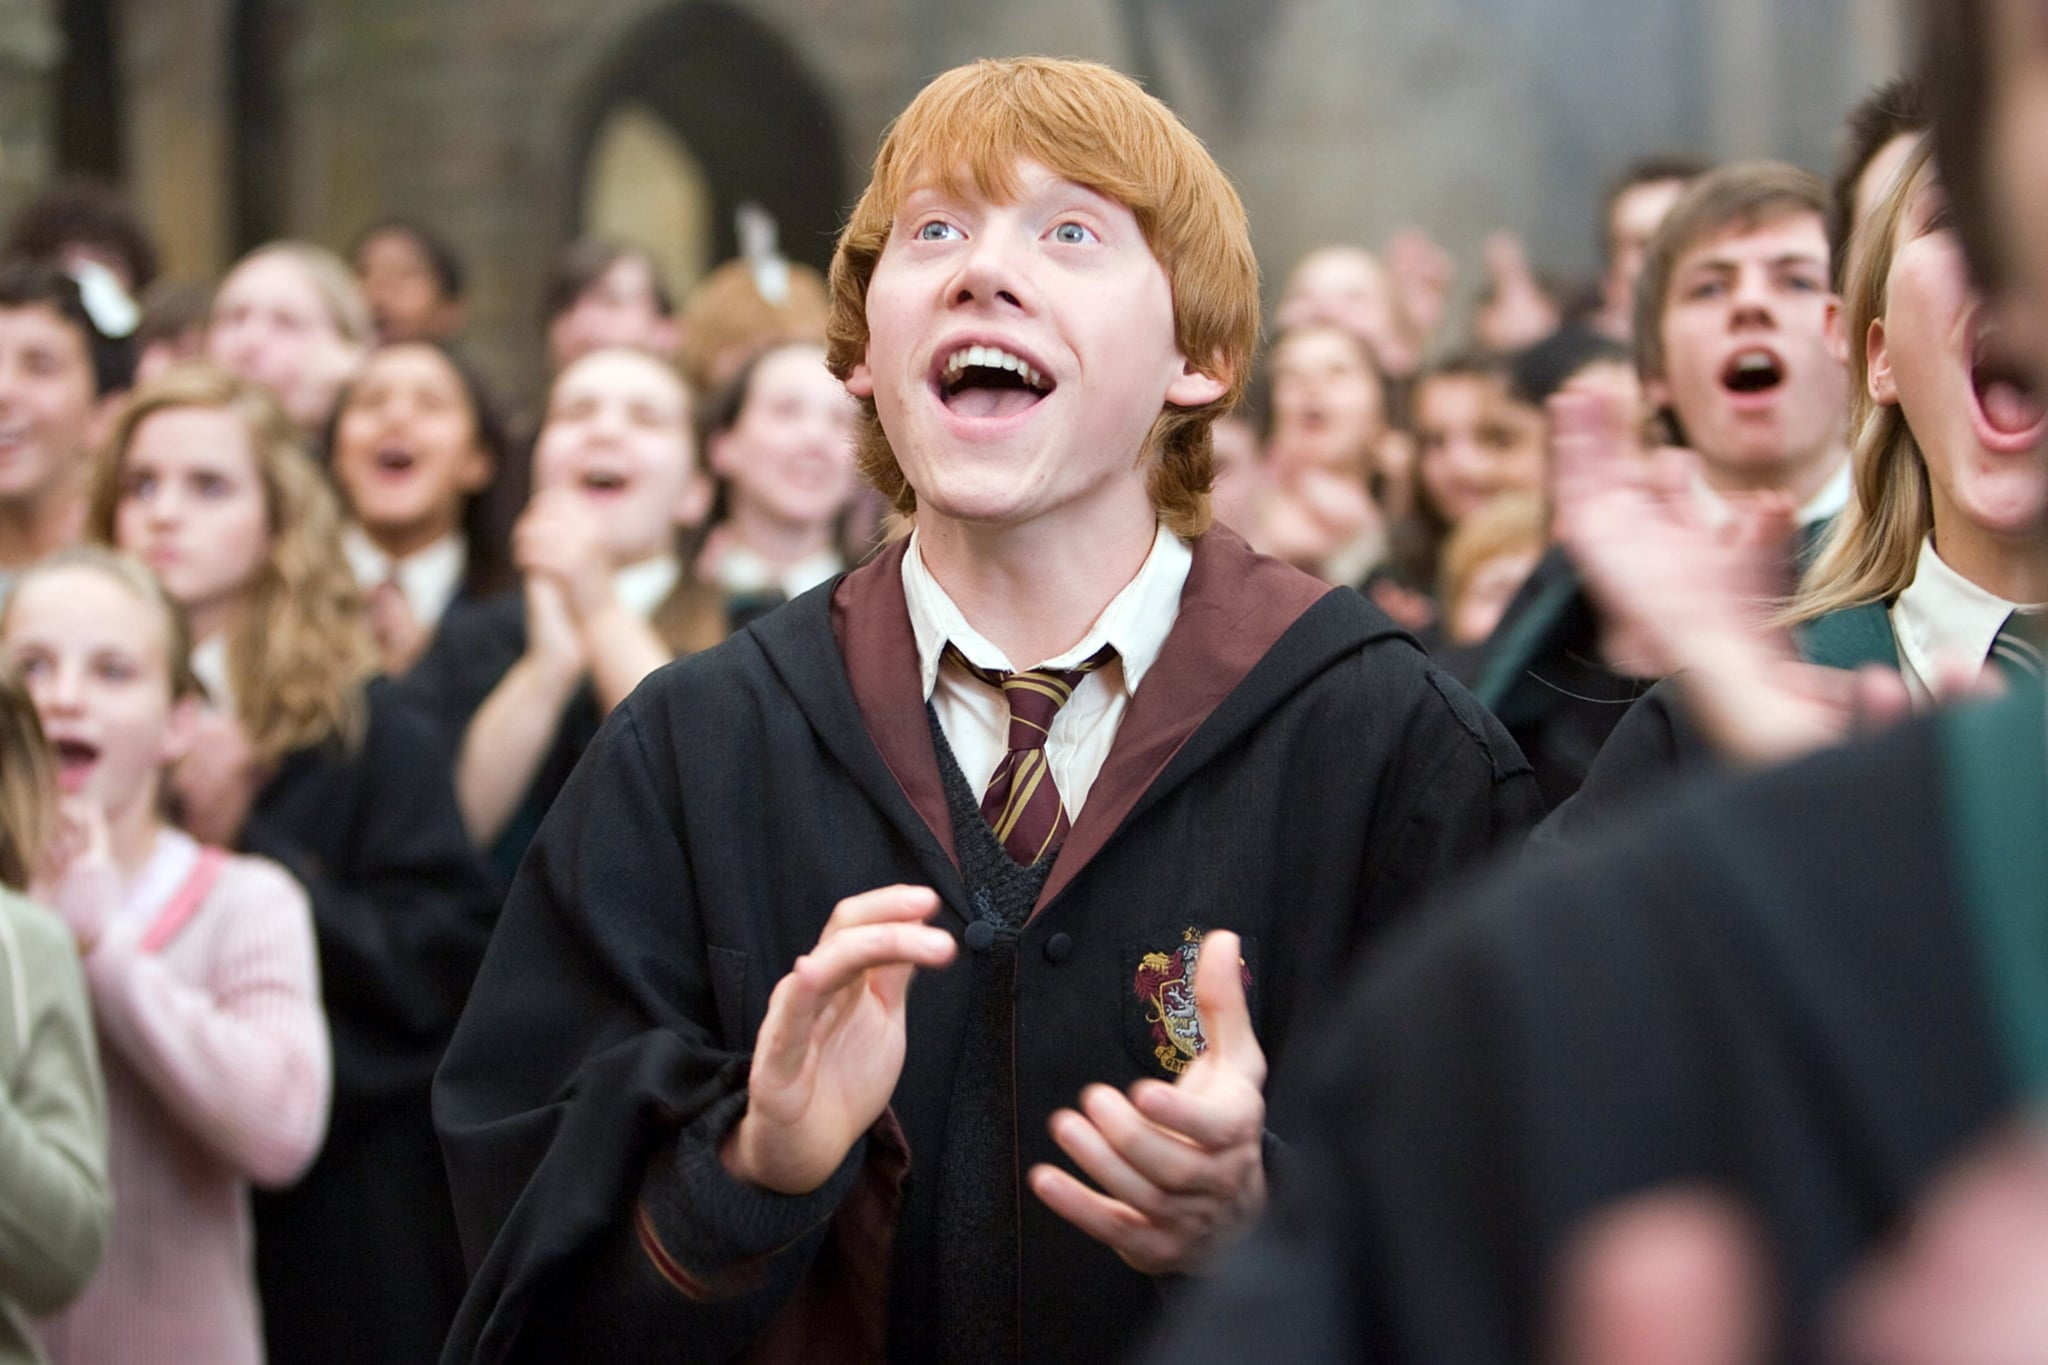 HARRY POTTER AND THE ORDER OF THE PHOENIX, Rupert Grint, 2007. Ph: Murray Close/Warner Bros./Courtesy Everett Collection